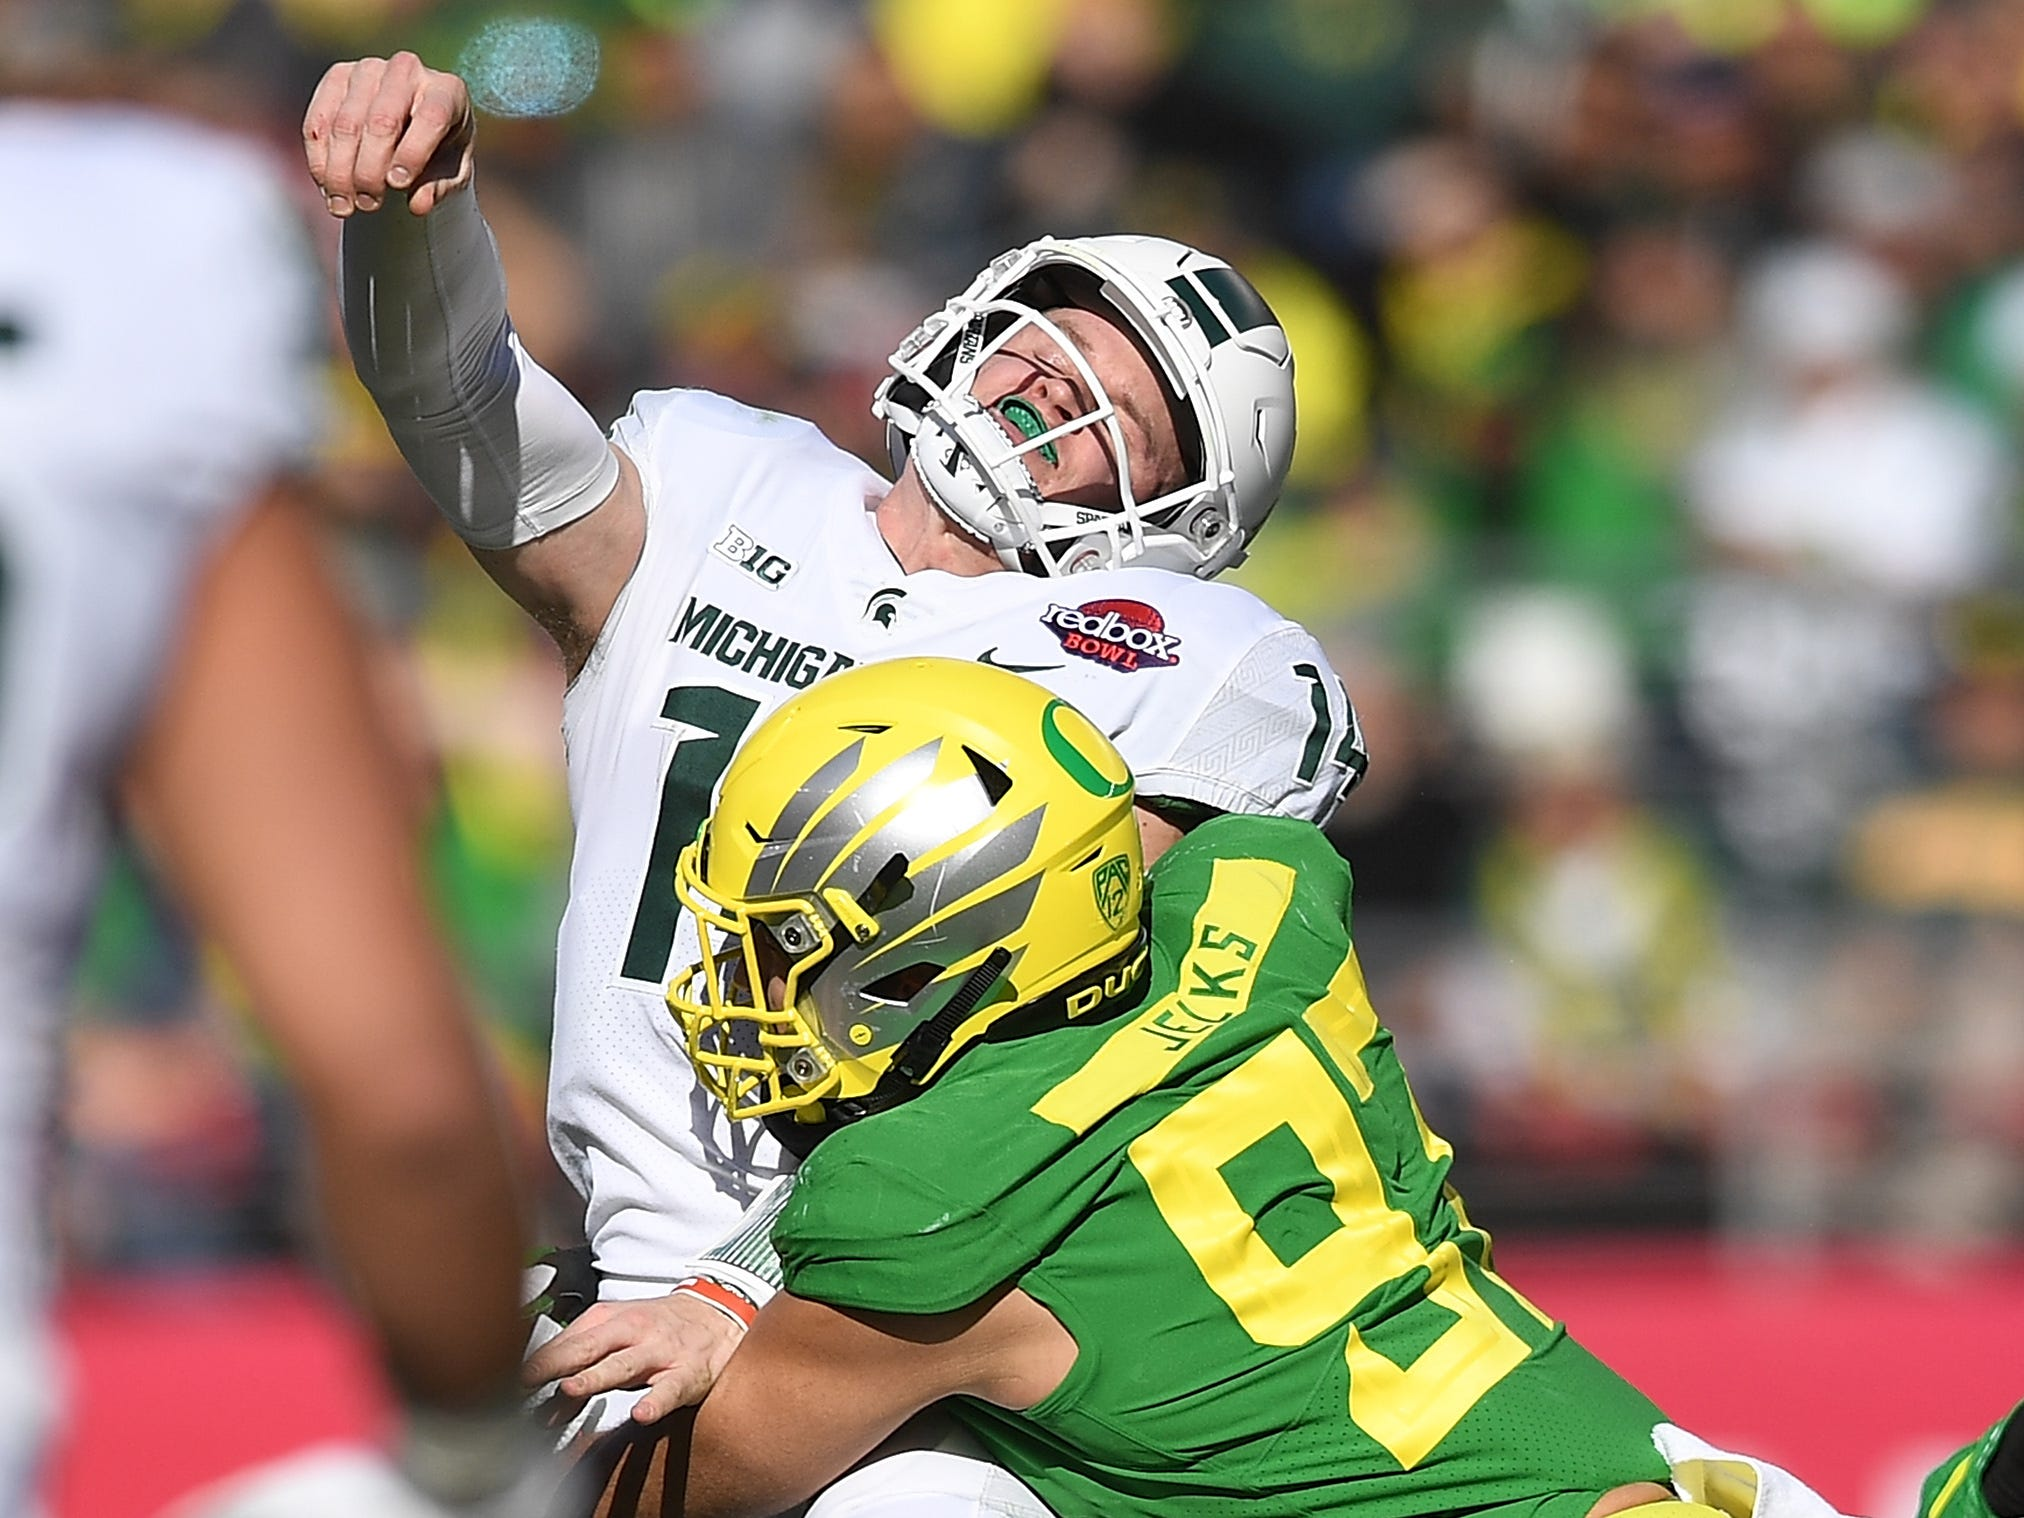 Brian Lewerke #14 of the Michigan State Spartans gets his pass off under pressure from Jalen Jelks #97 of the Oregon Ducks during the first half of the Redbox Bowl at Levi's Stadium on December 31, 2018 in Santa Clara, California.